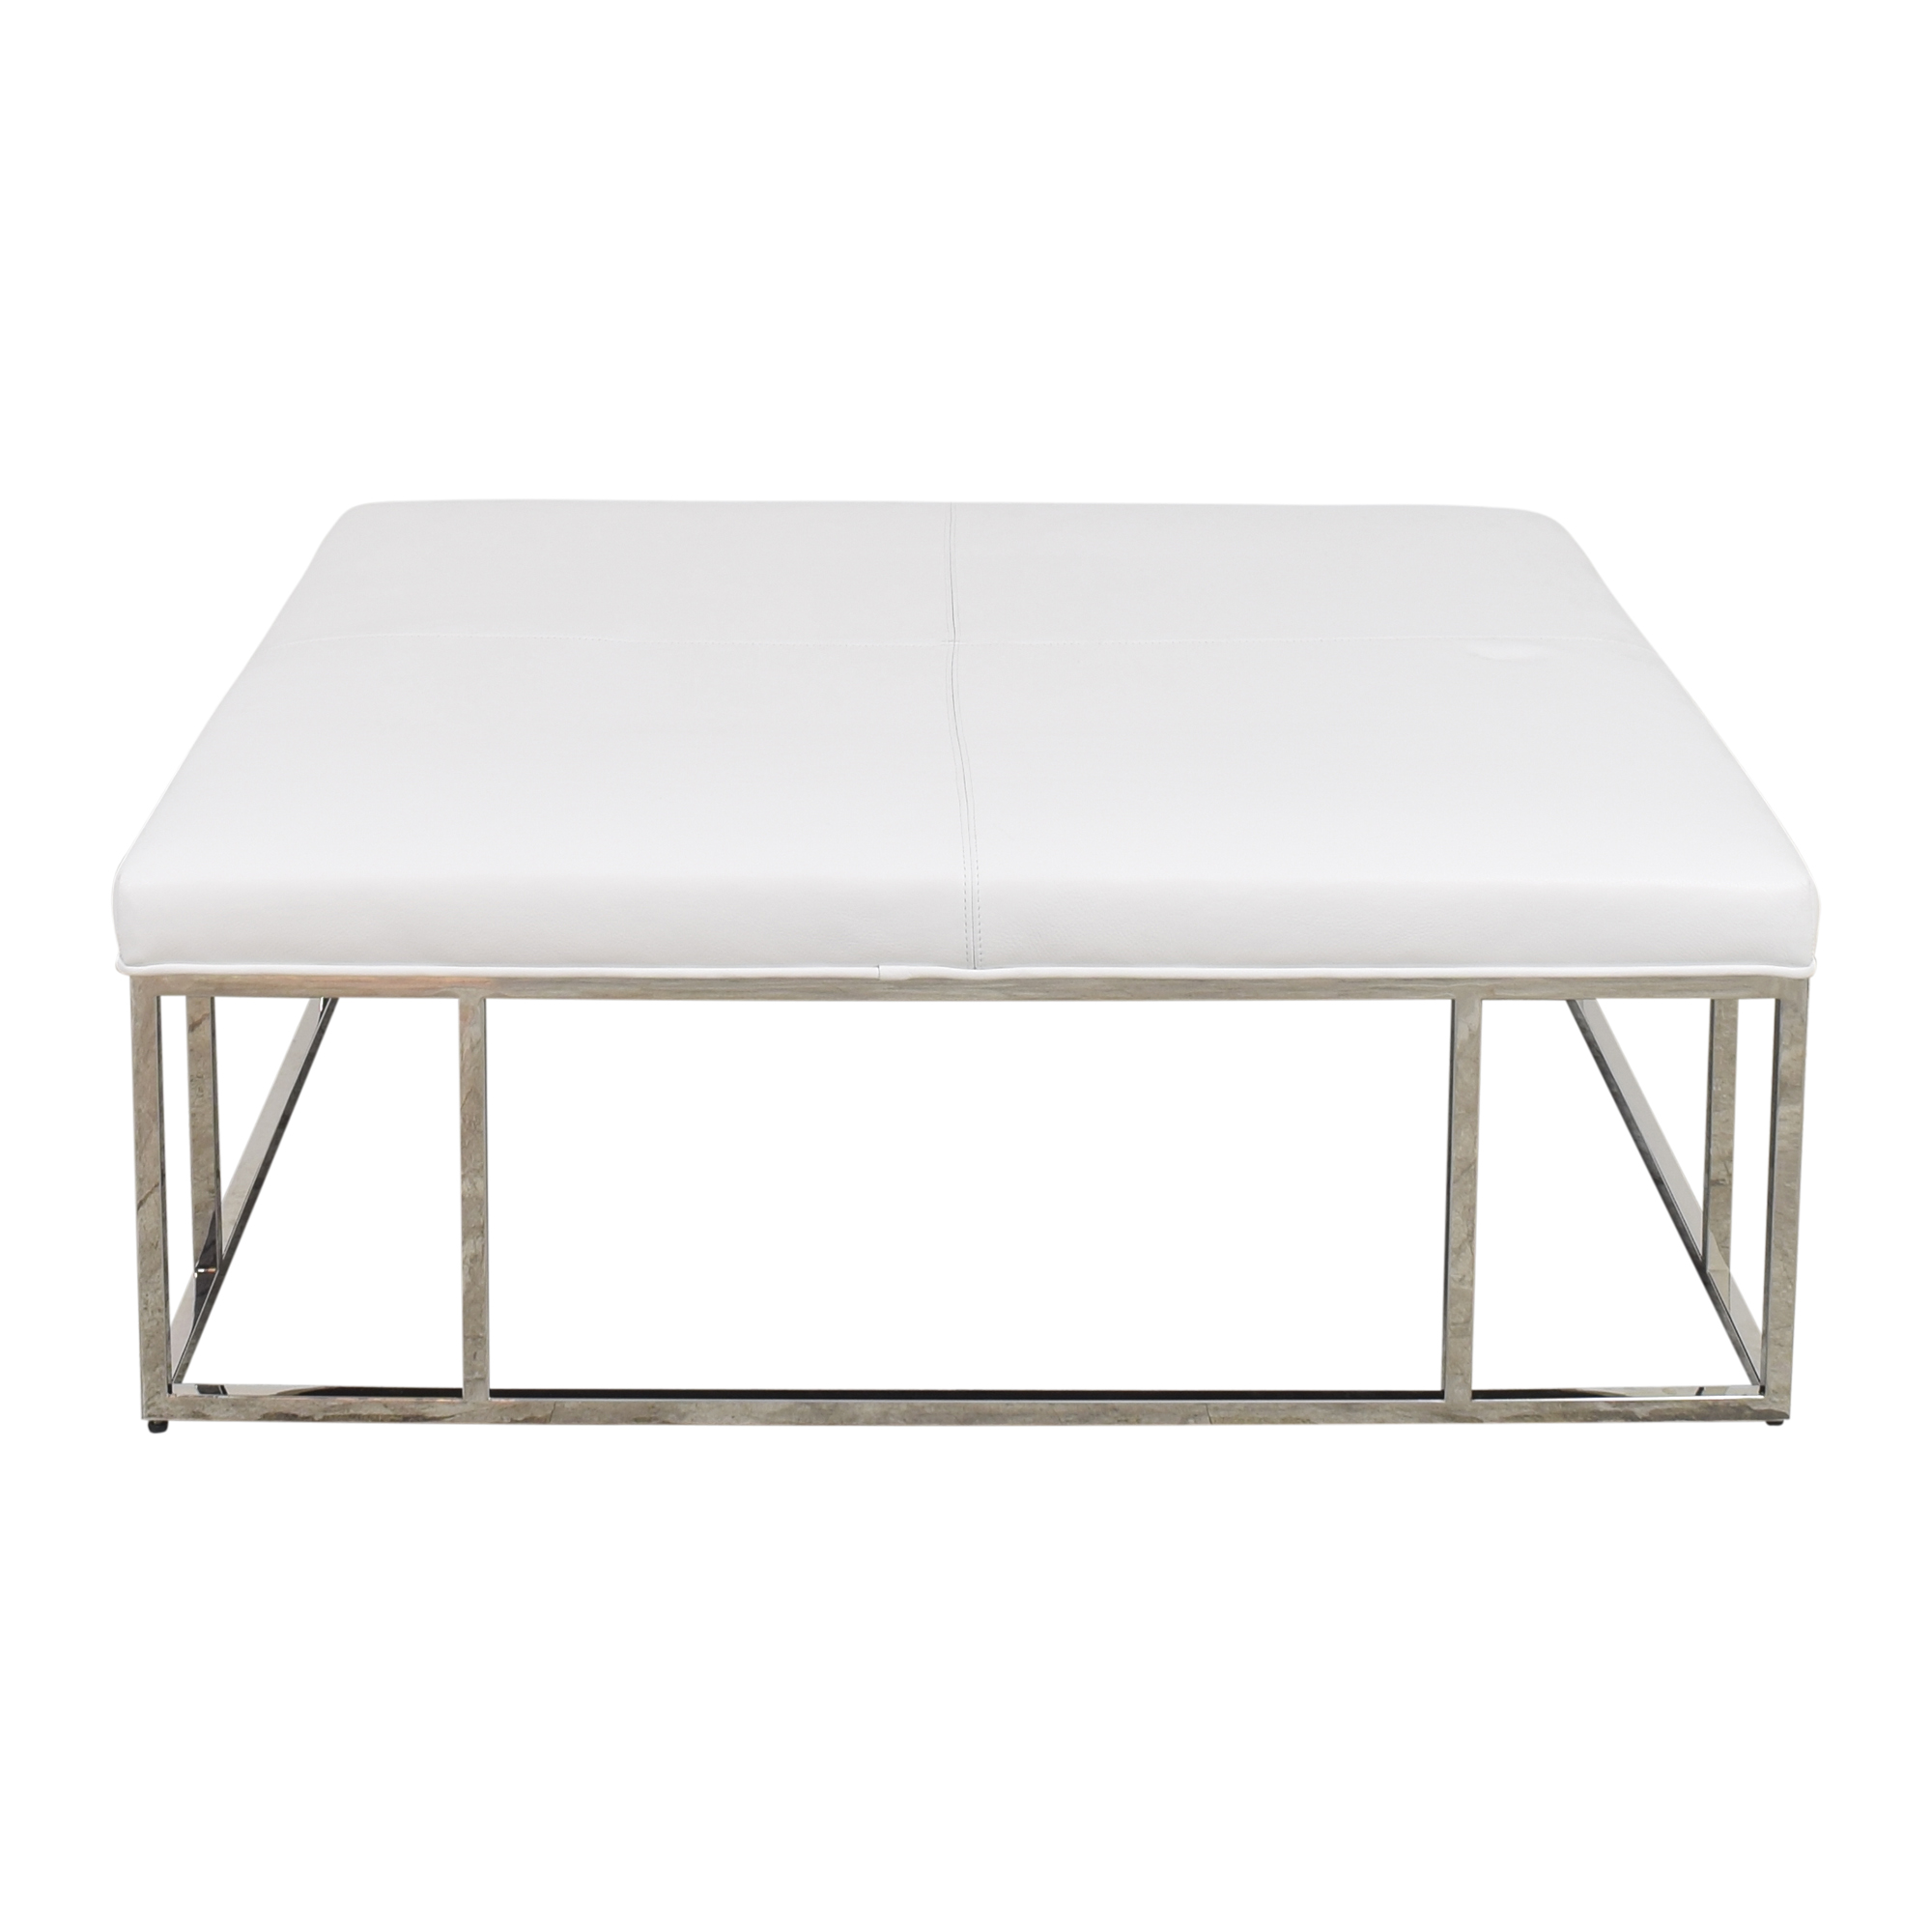 Mitchell Gold + Bob Williams Mitchell Gold + Bob Williams Carmen Square Ottoman on sale